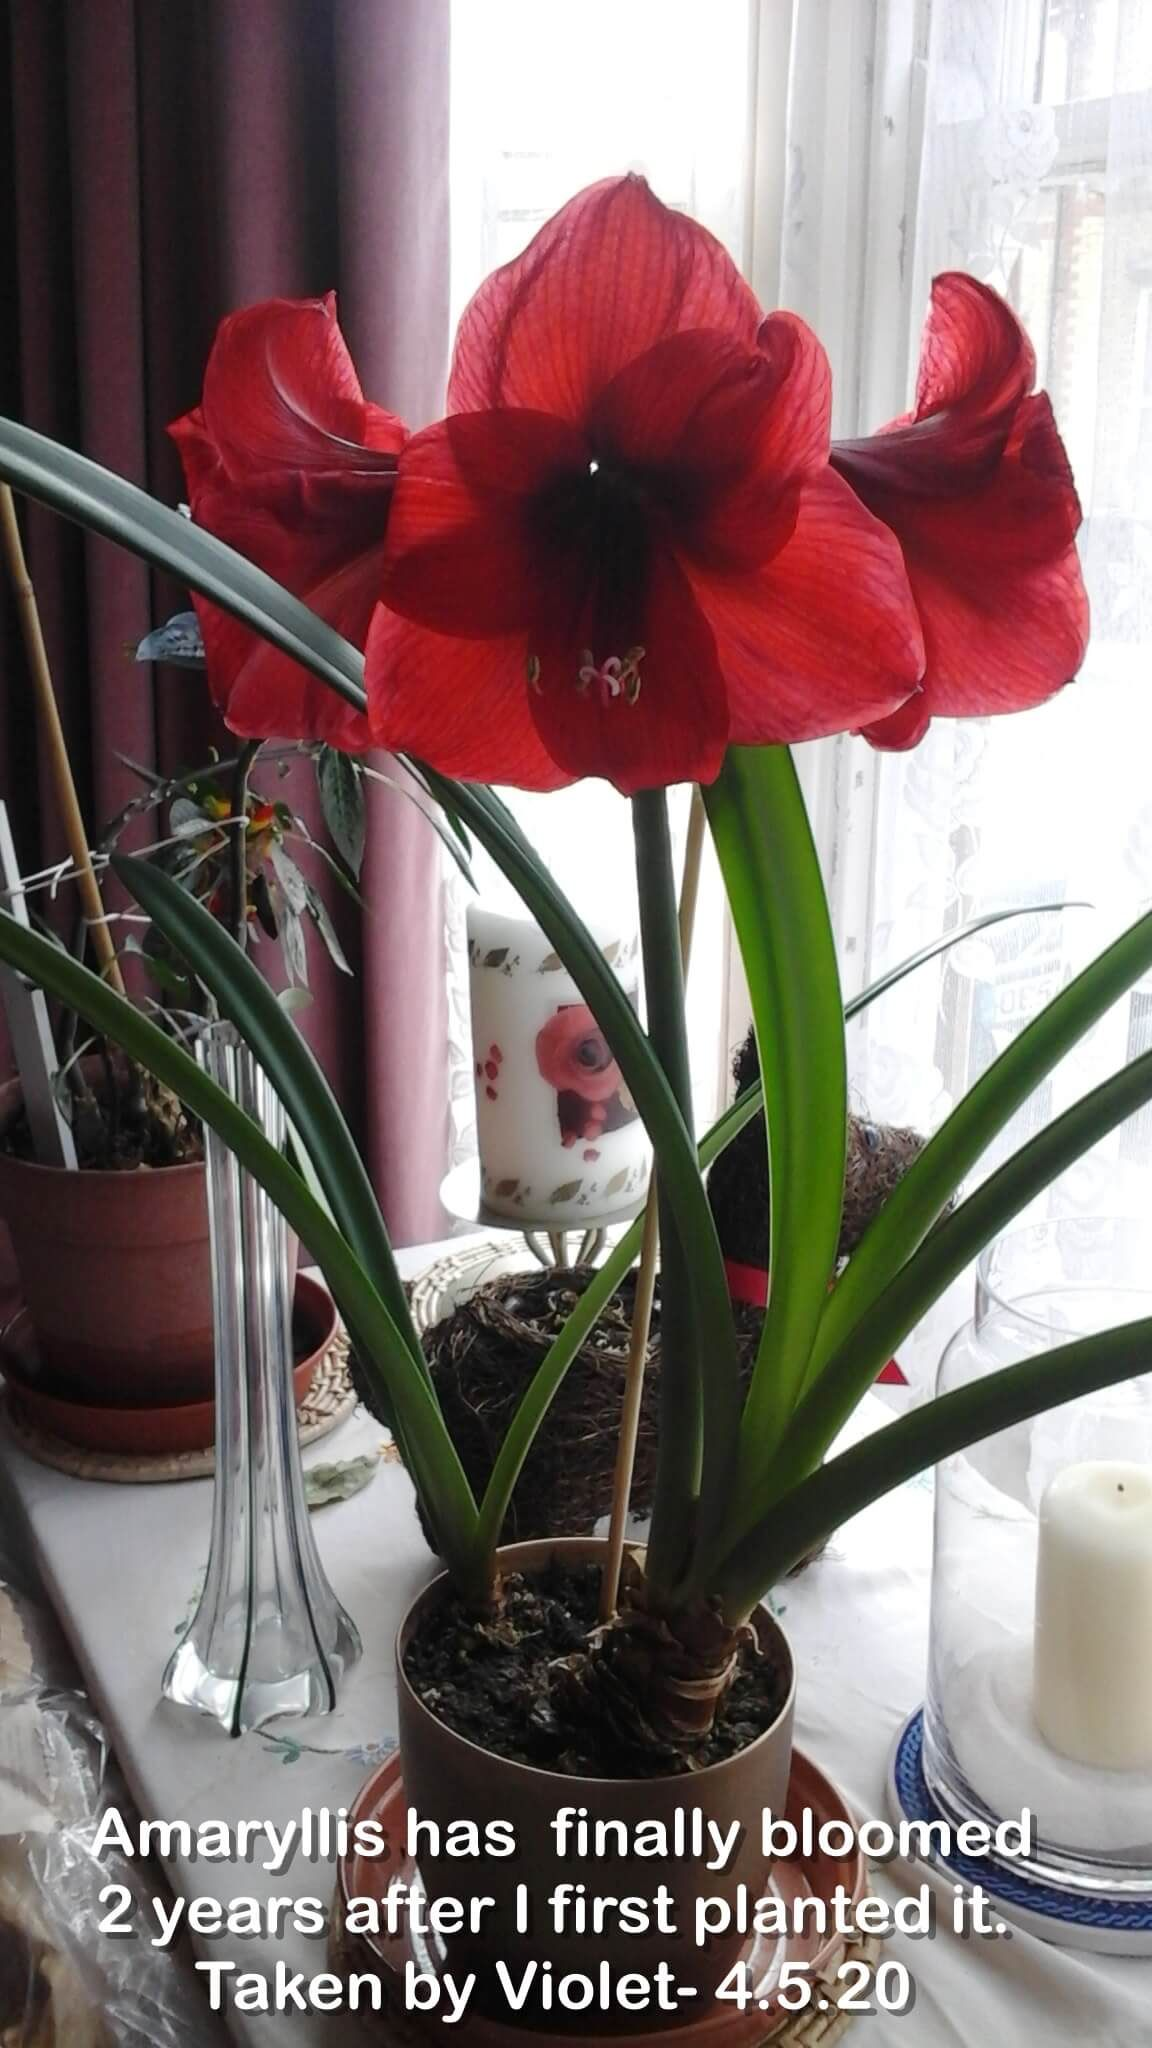 Amaryllis has  finally bloomed 2 years after I first planted it.